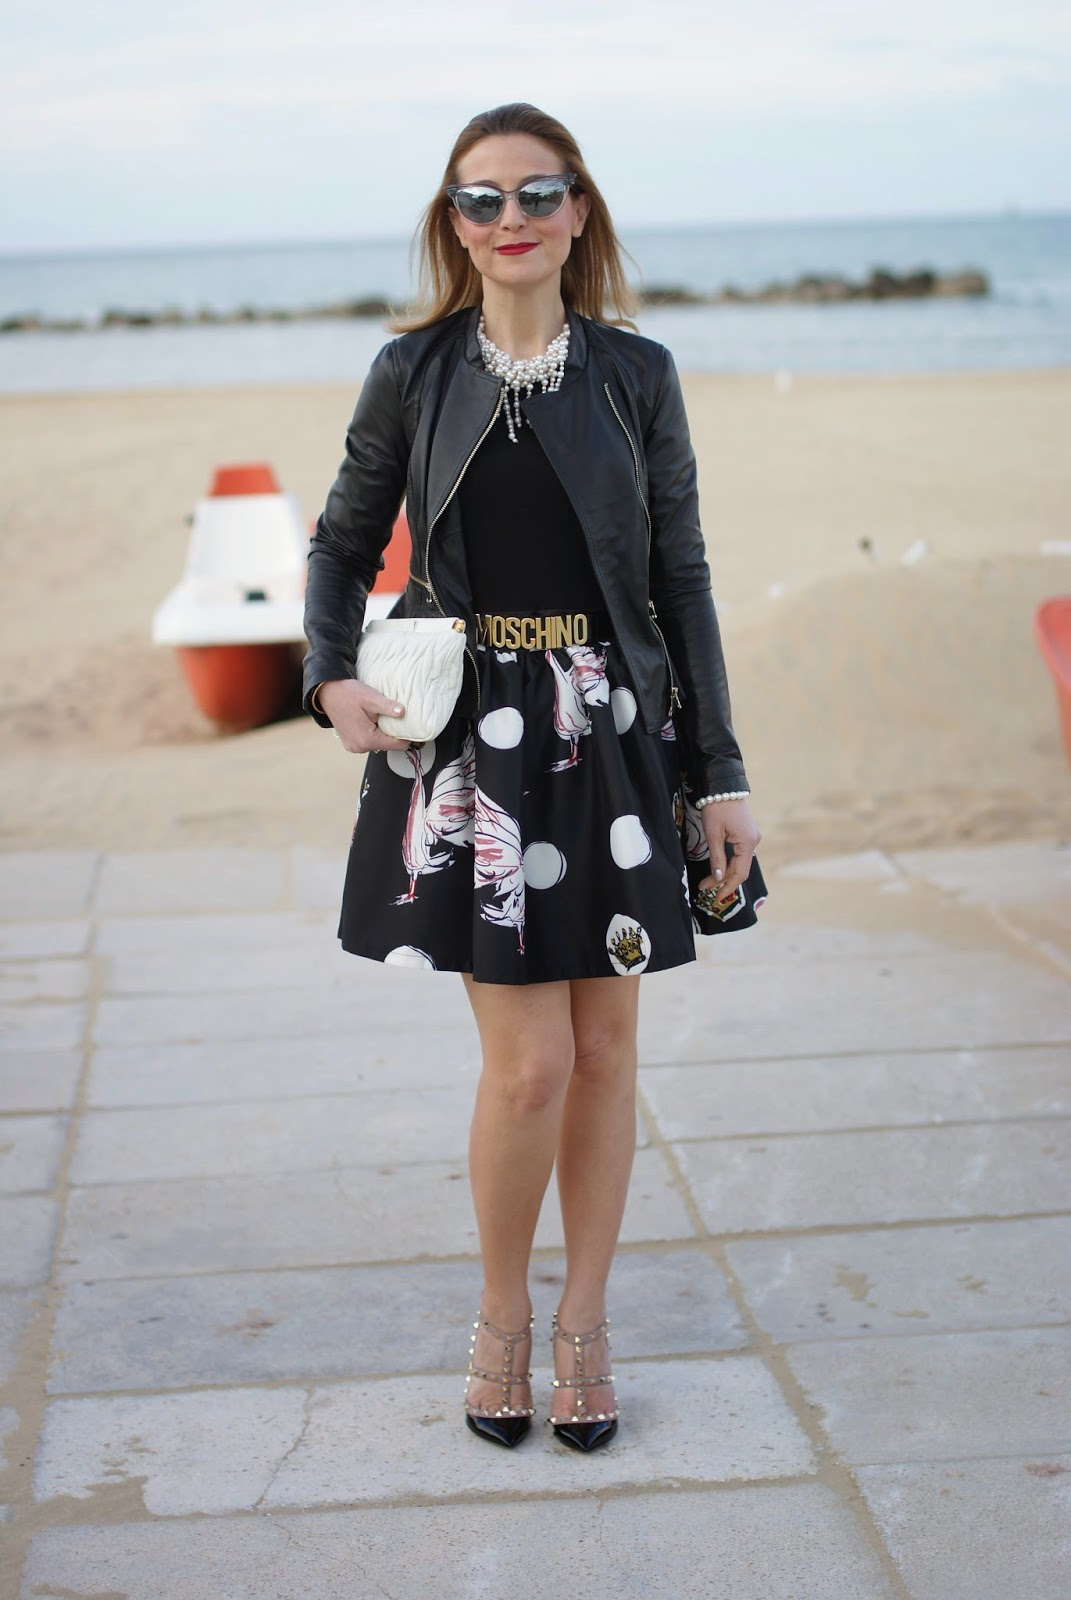 Zaful dress, Polka dots dress, a-line Zaful dress with Valentino rockstud pumps on Fashion and Cookies fashion blog